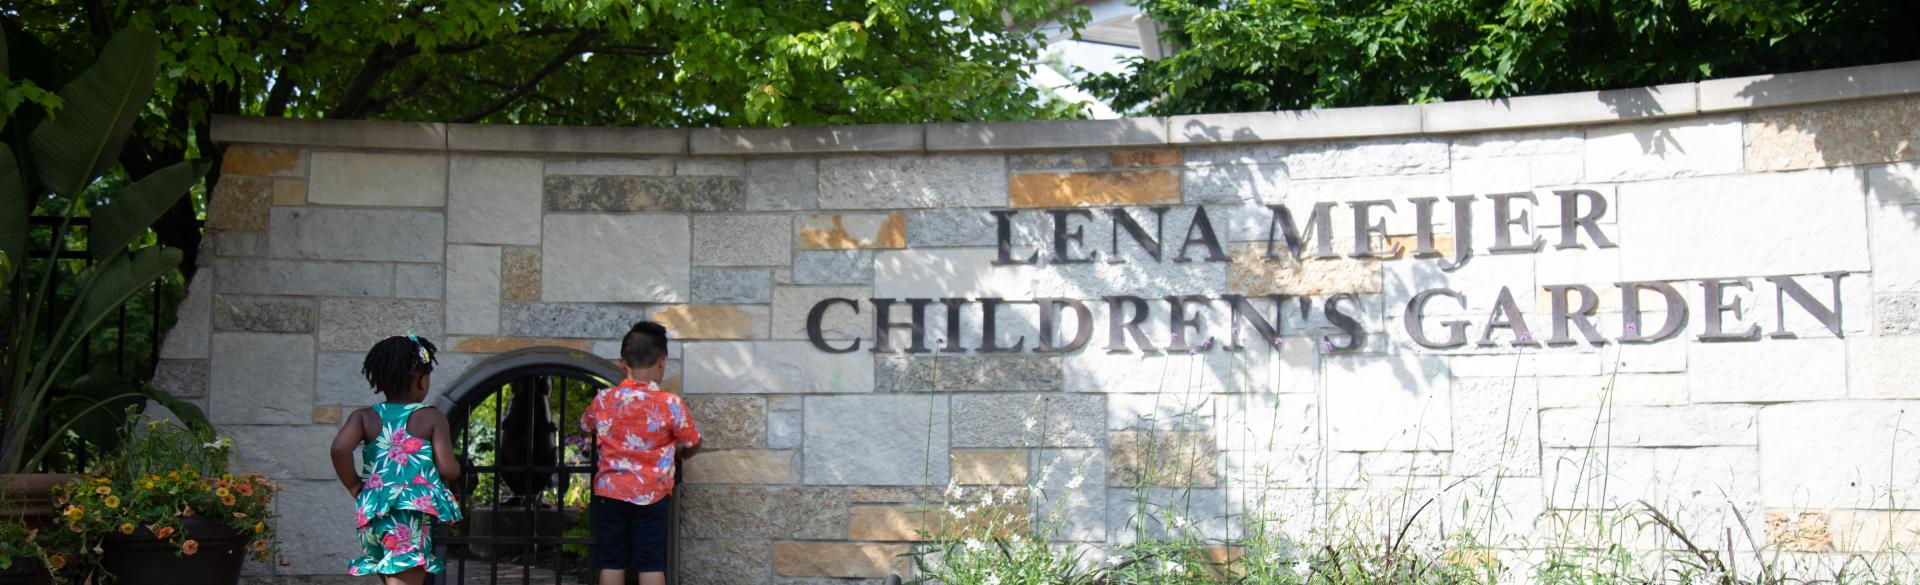 Children entering the Lena Meijer Children's Garden at Frederik Meijer Gardens & Sculpture Park